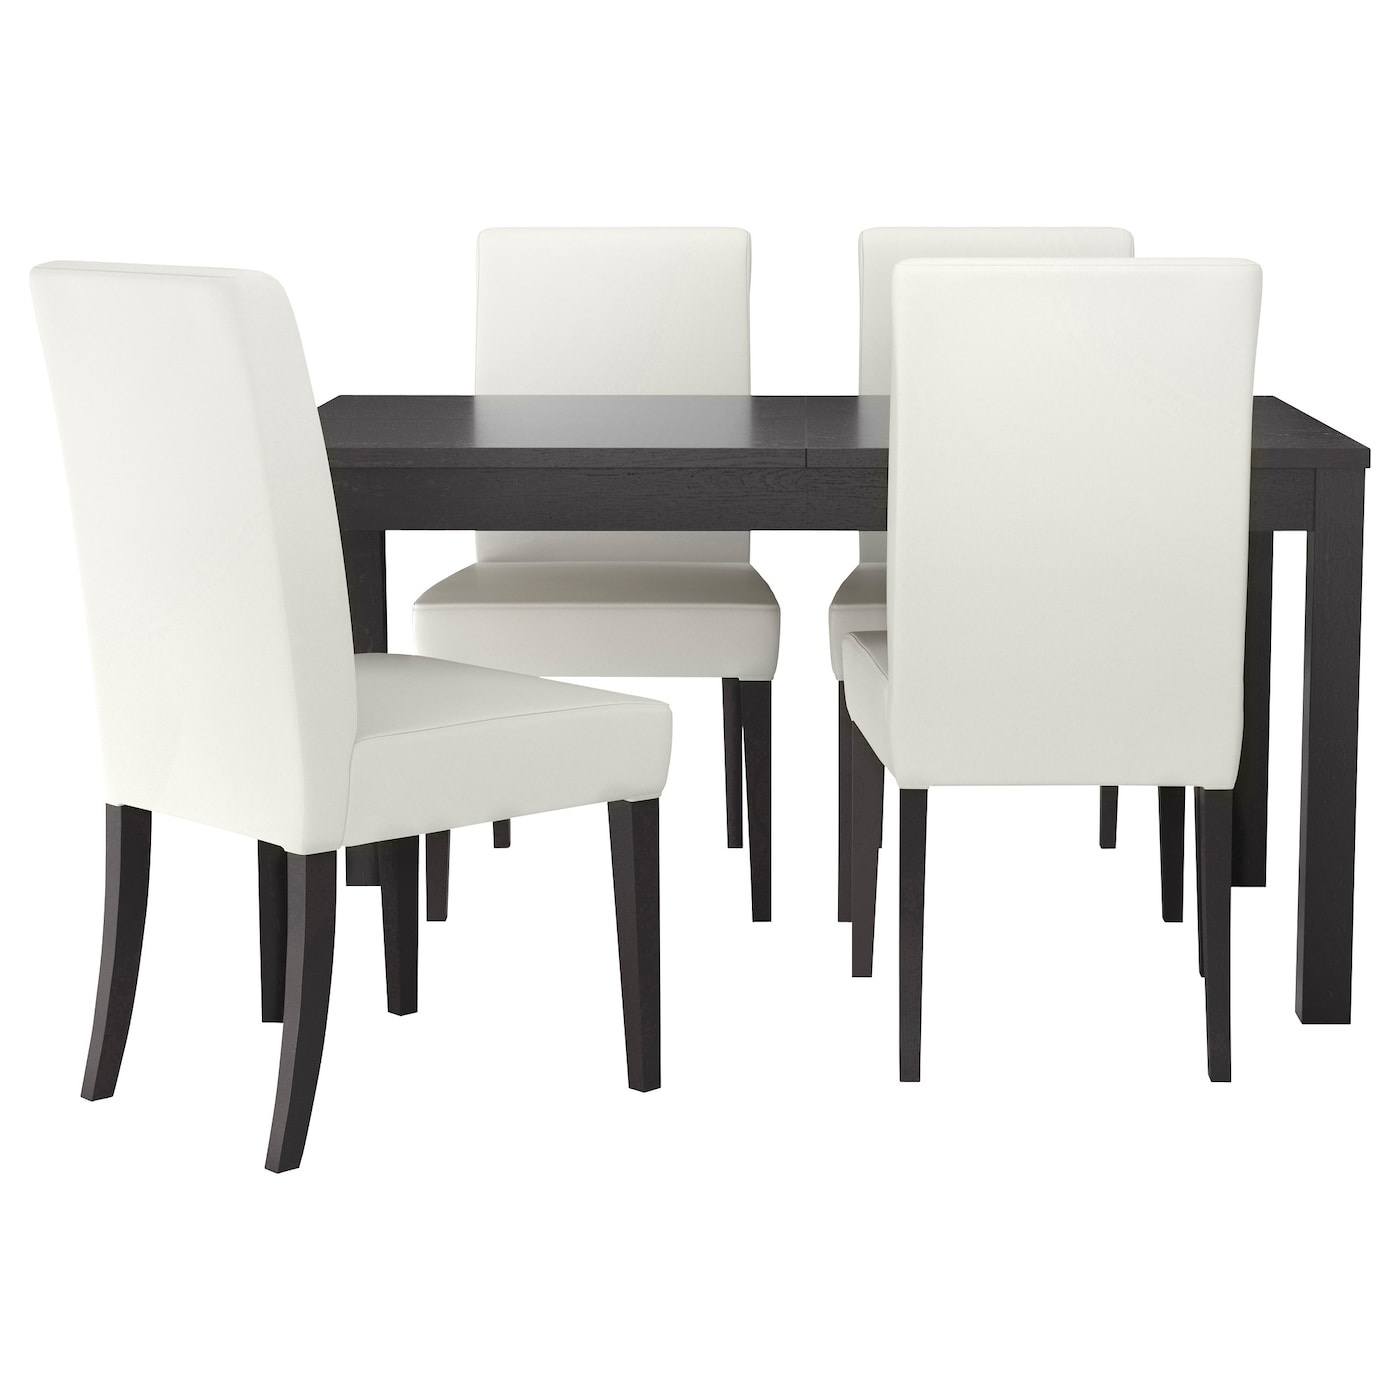 HENRIKSDALBJURSTA Table and 4 chairs Brown blackgrsbo white 140